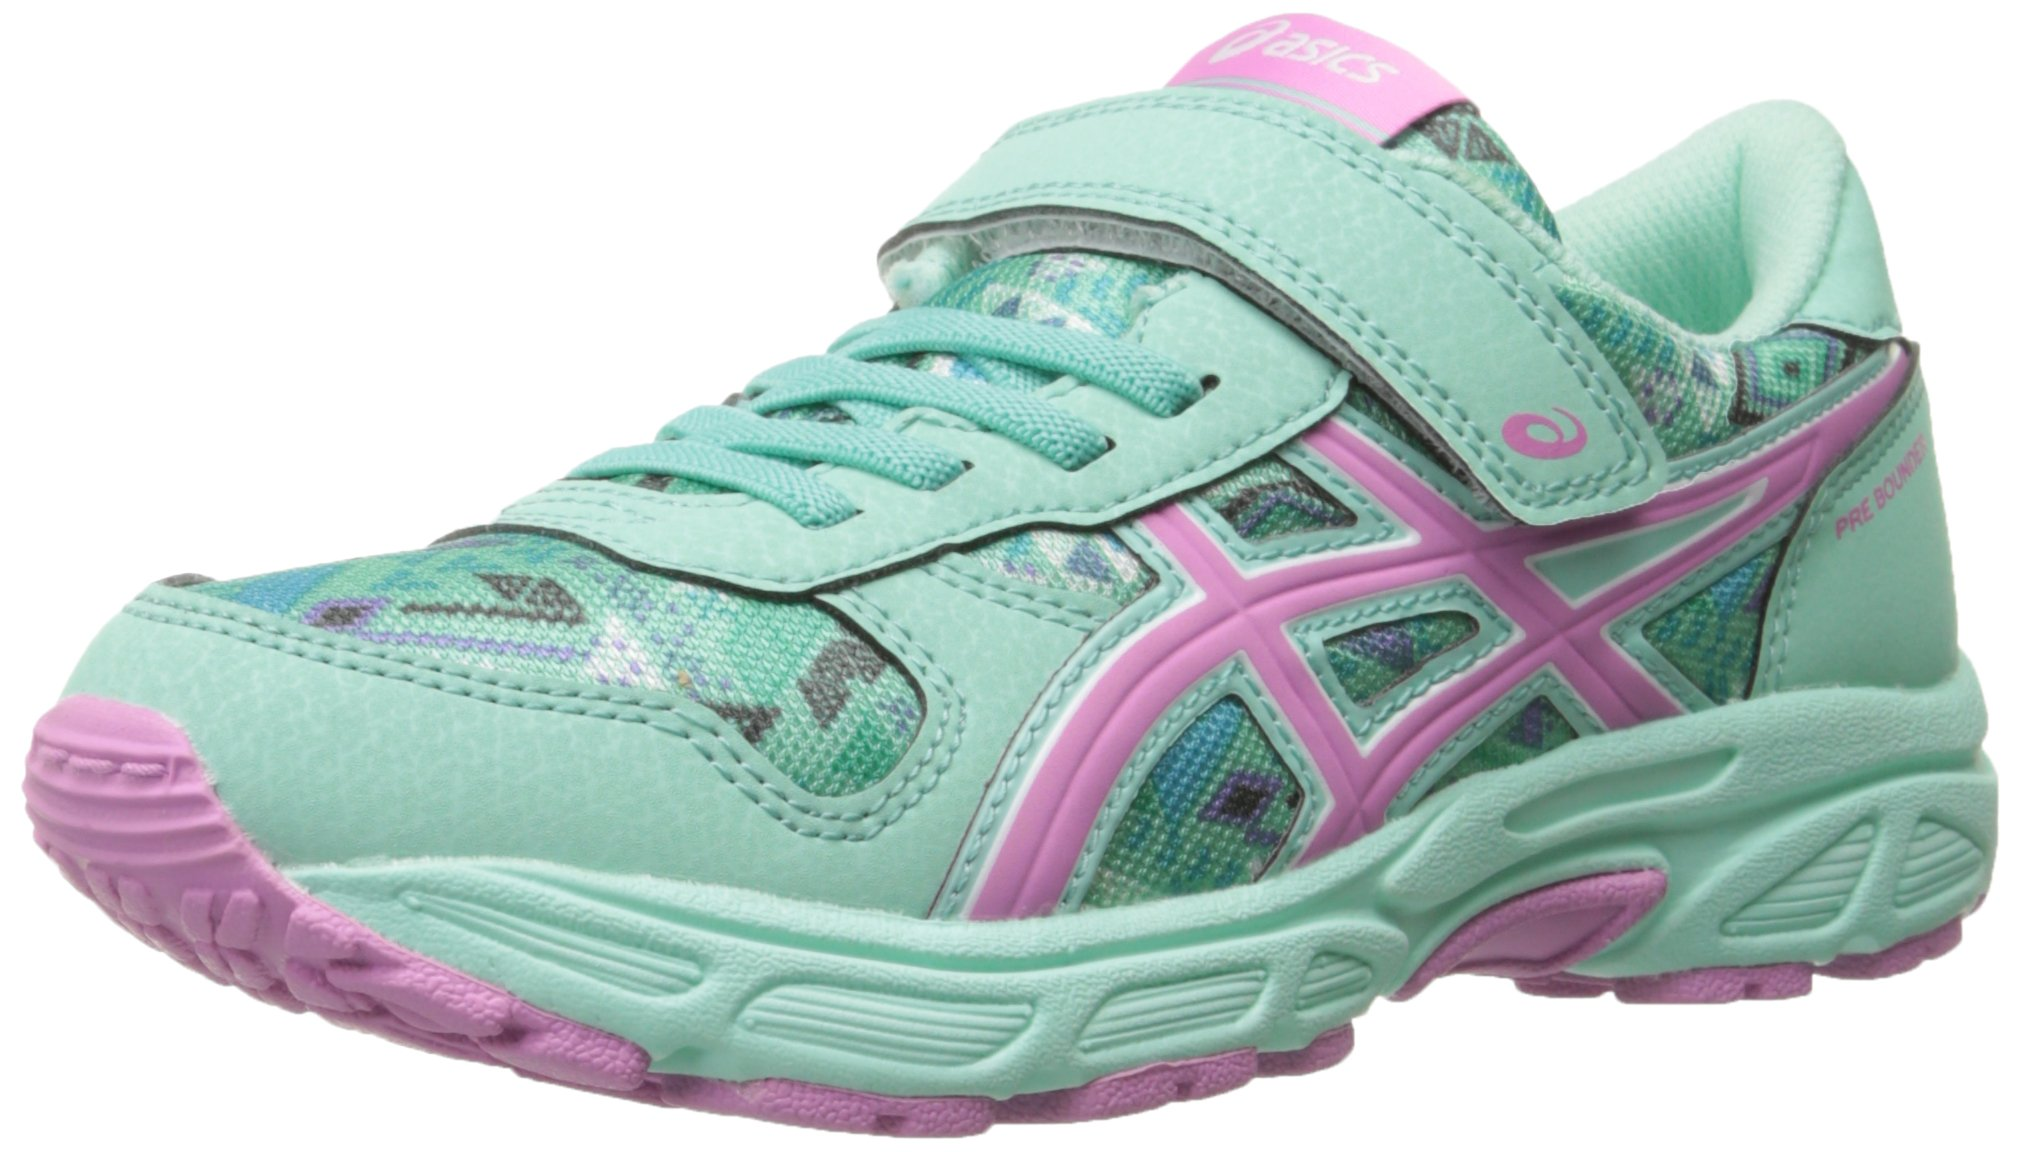 ASICS Pre Bounder PS Running Shoe (Toddler/Little Kid), Beach Glass/Pink/Bermuda, 3 M US Little Kid